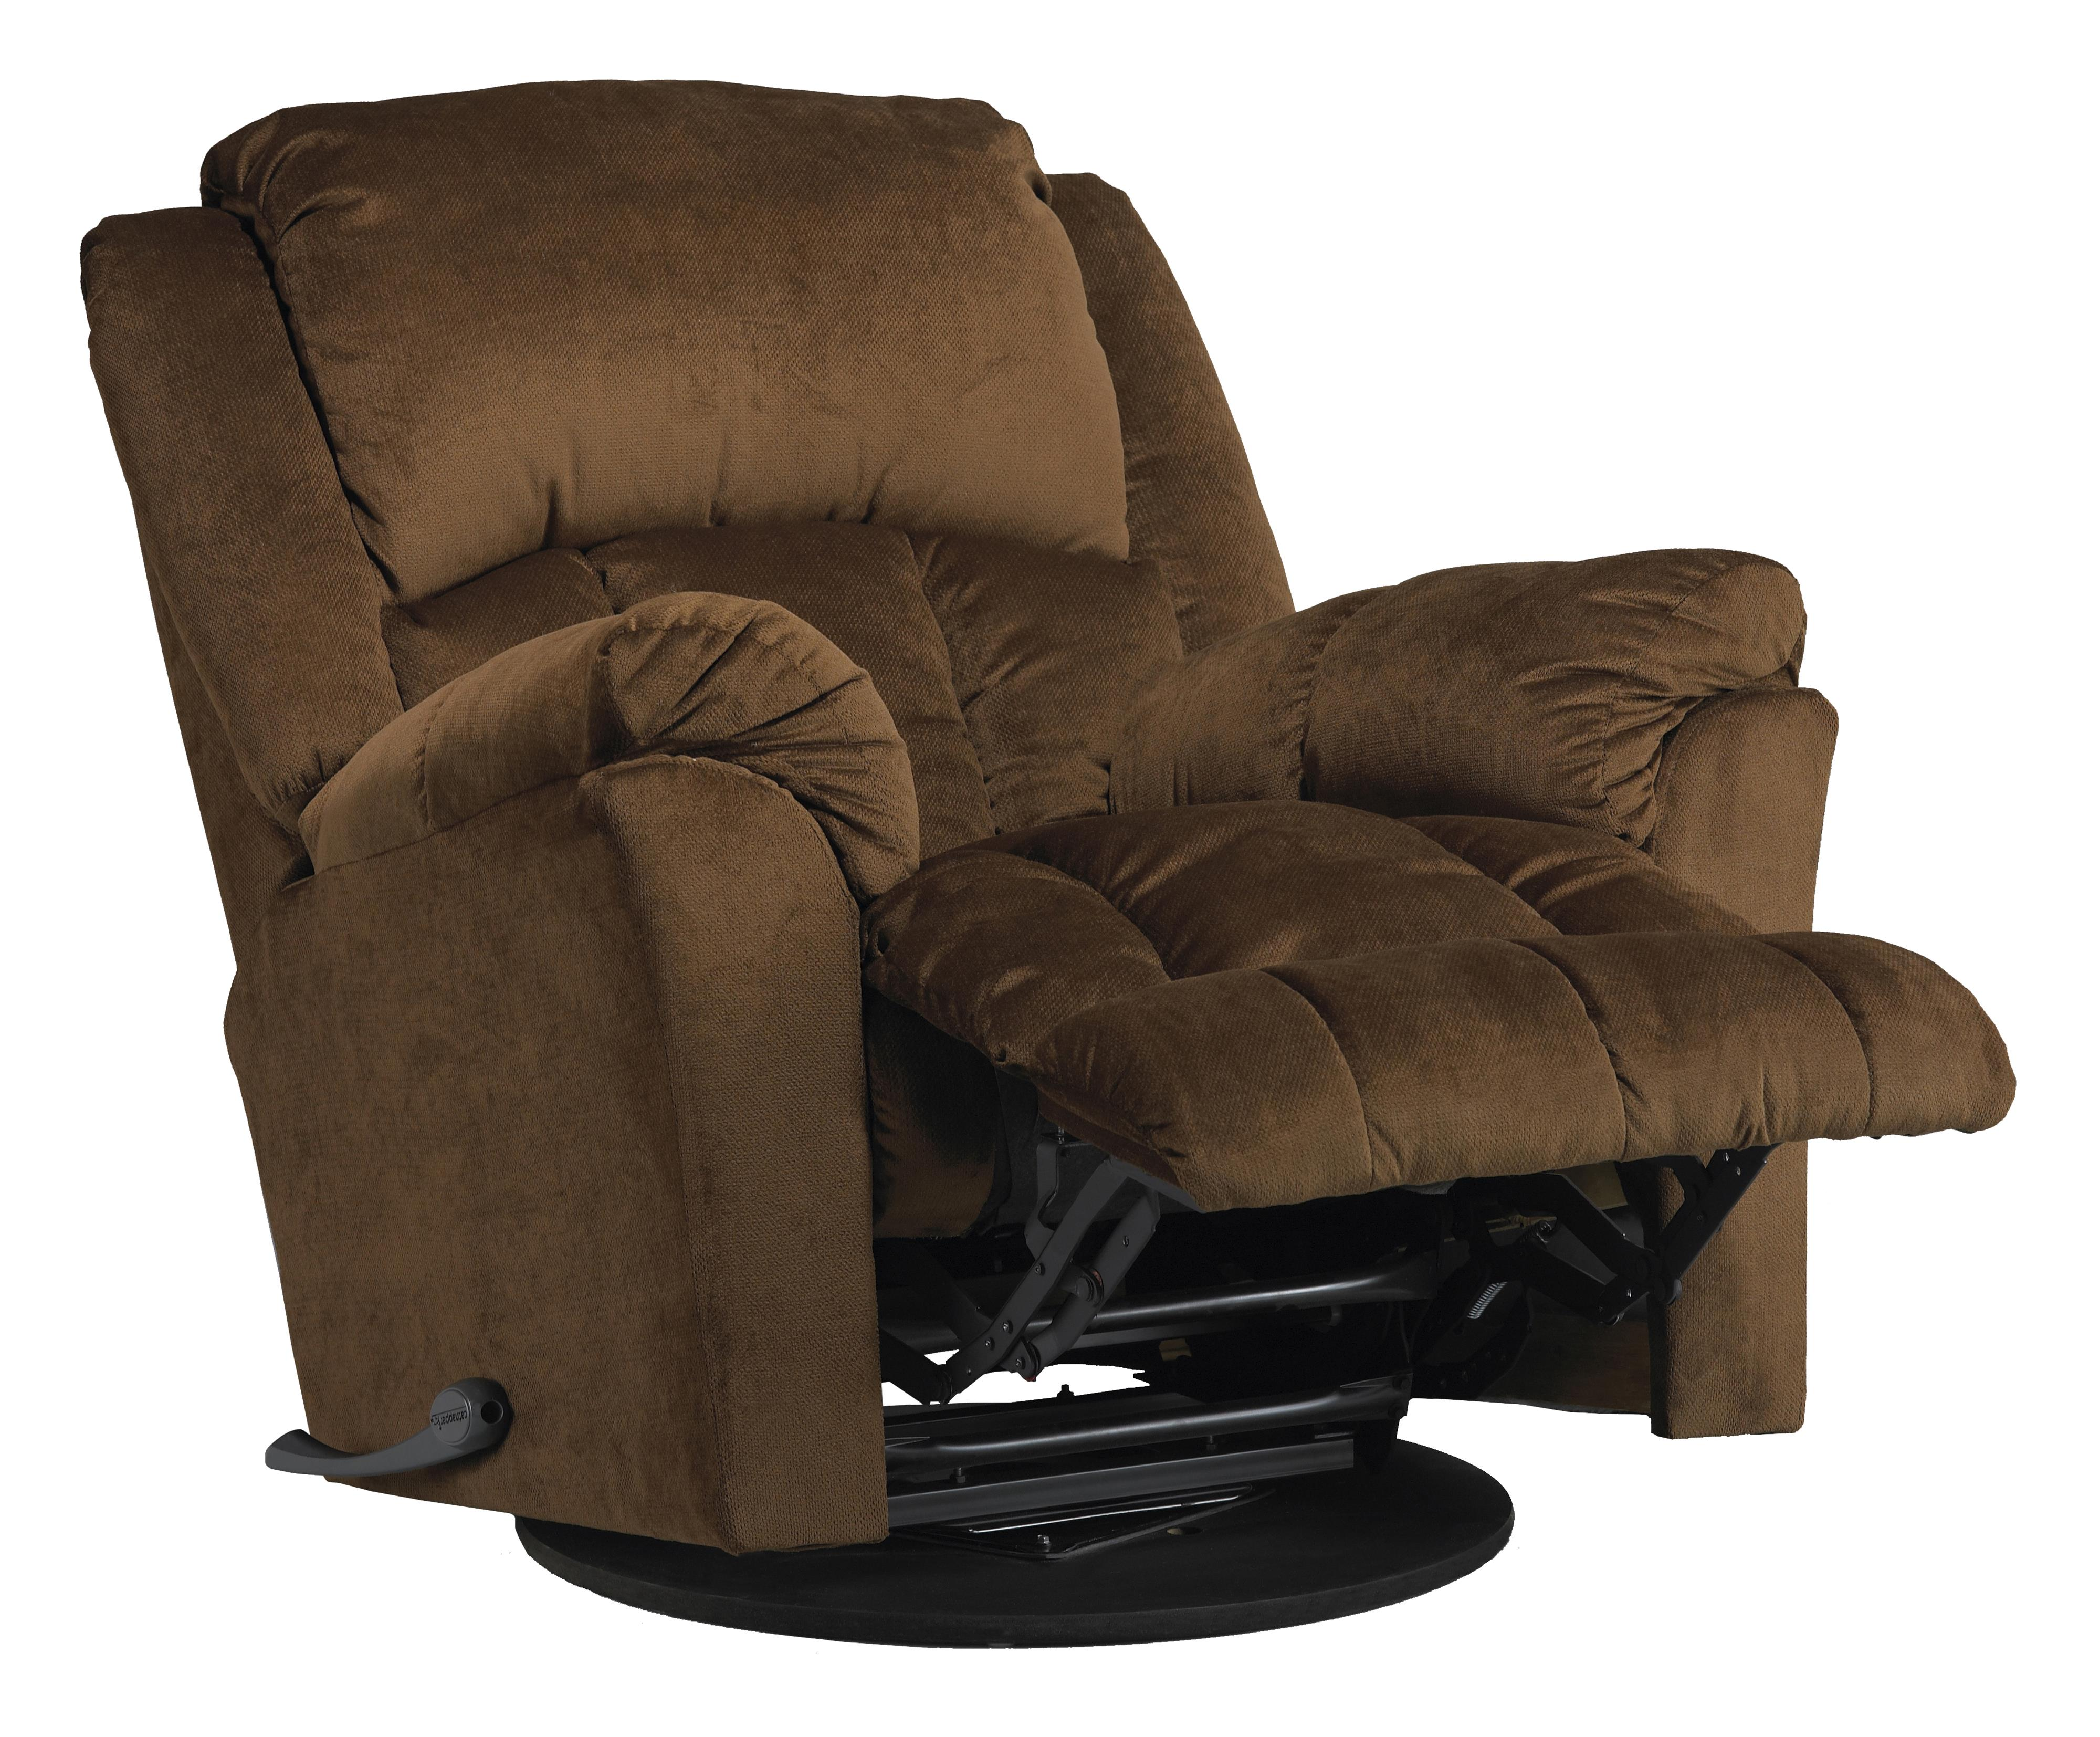 Catnapper Motion Chairs and Recliners Gibson Lay Flat Recliner - Item Number: 4516-7-1831-29